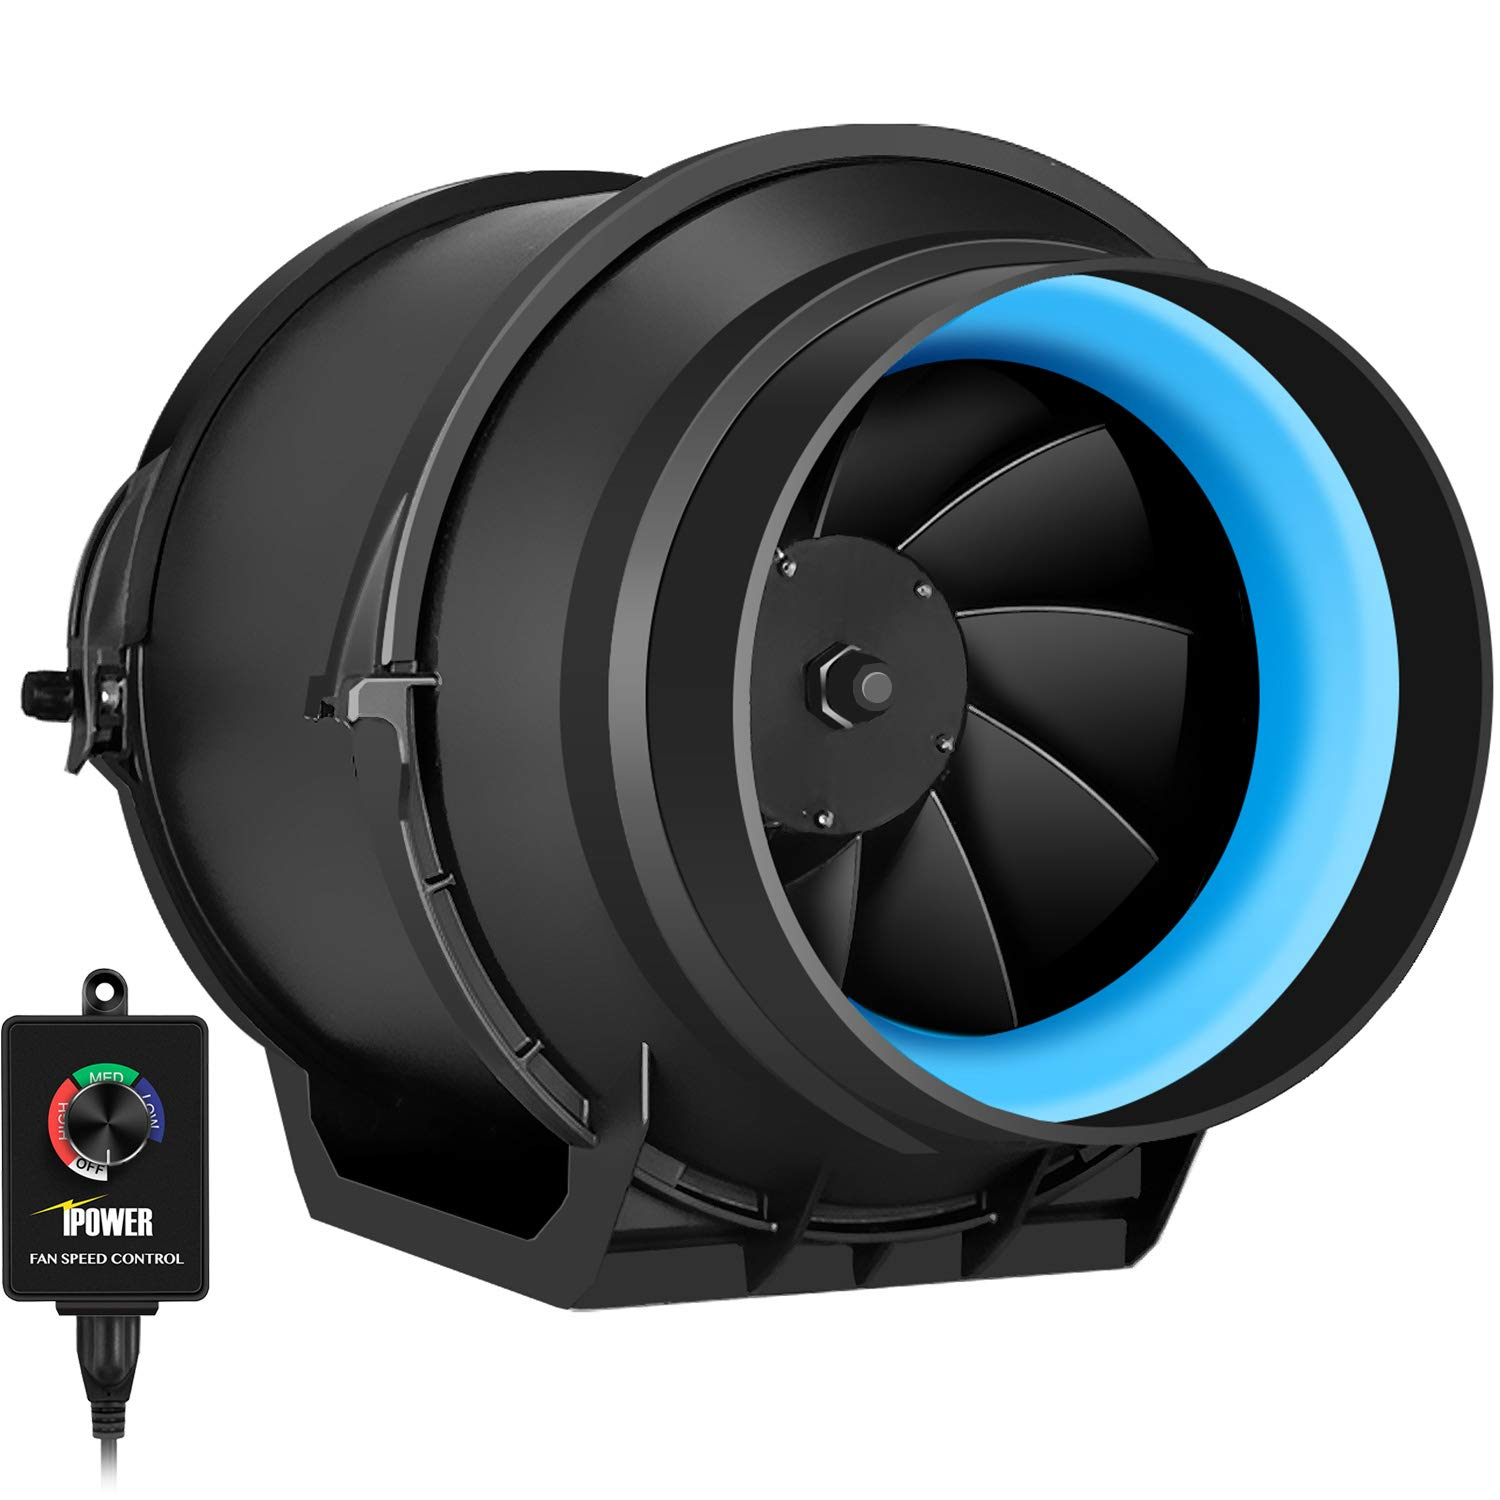 iPower's 6 inch inline duct fan